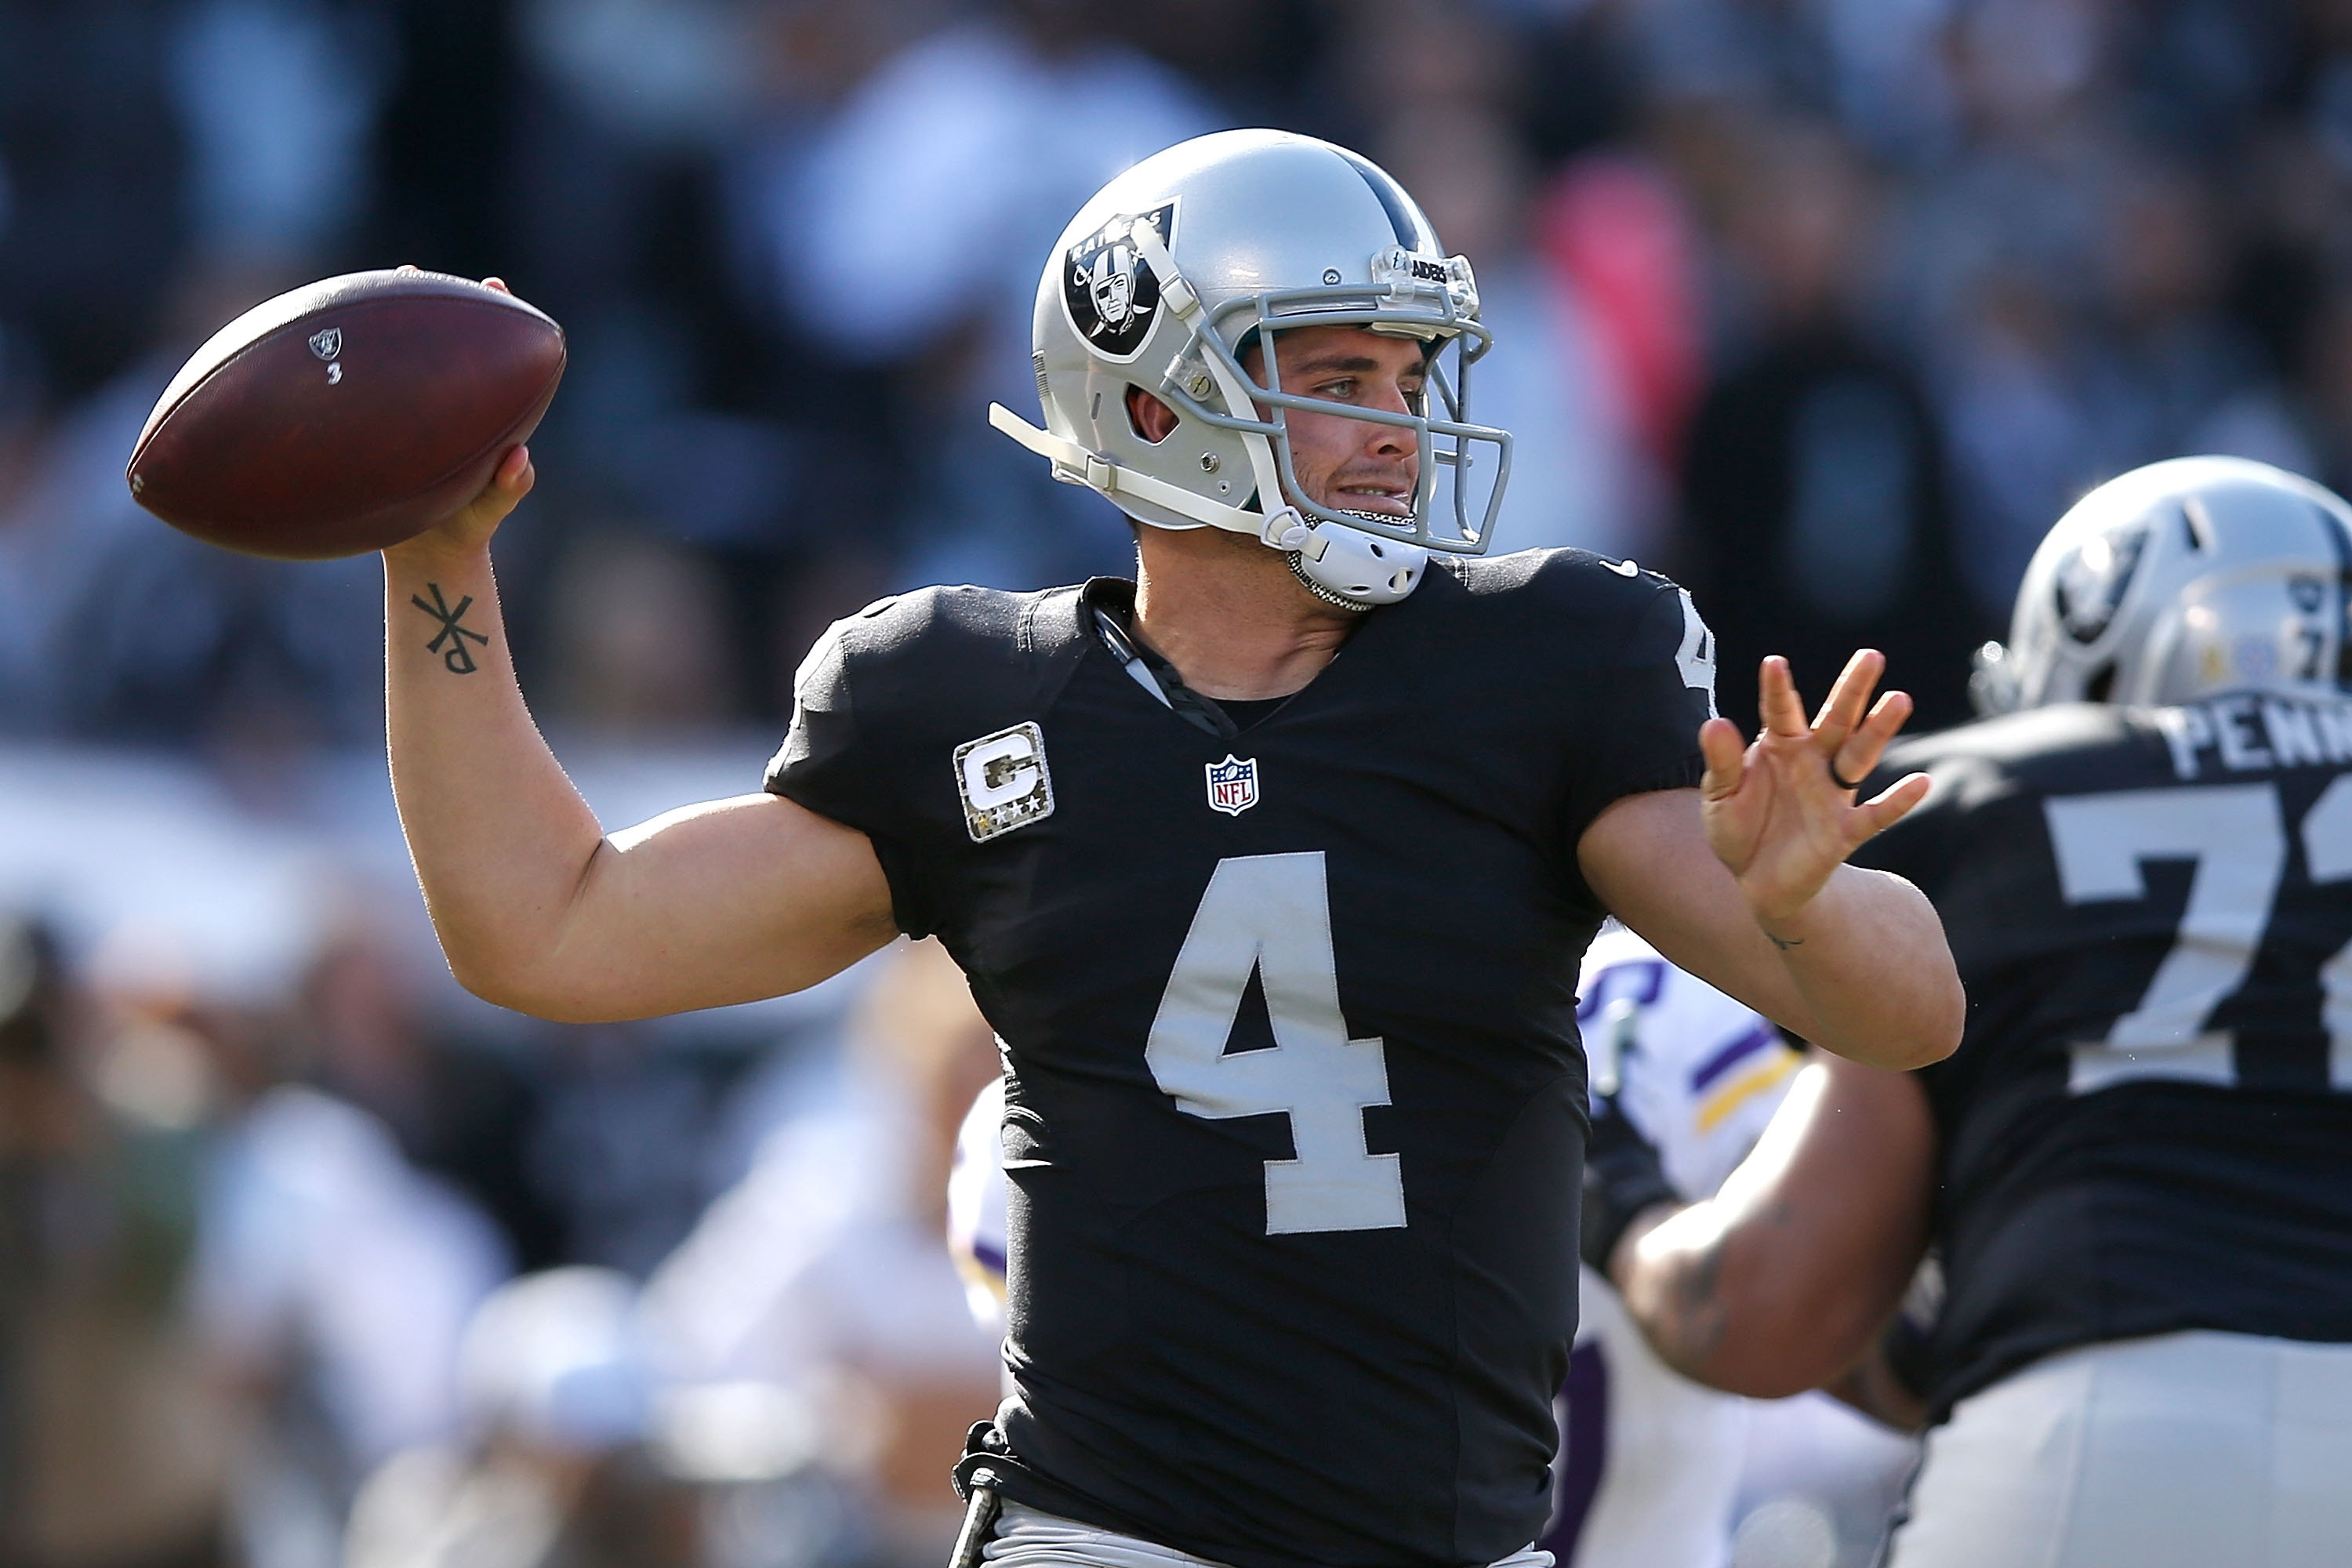 Quarterback Derek Carr and the Oakland Raiders will try to avoid their third straight loss when they take on the Detroit Lions on Sunday.